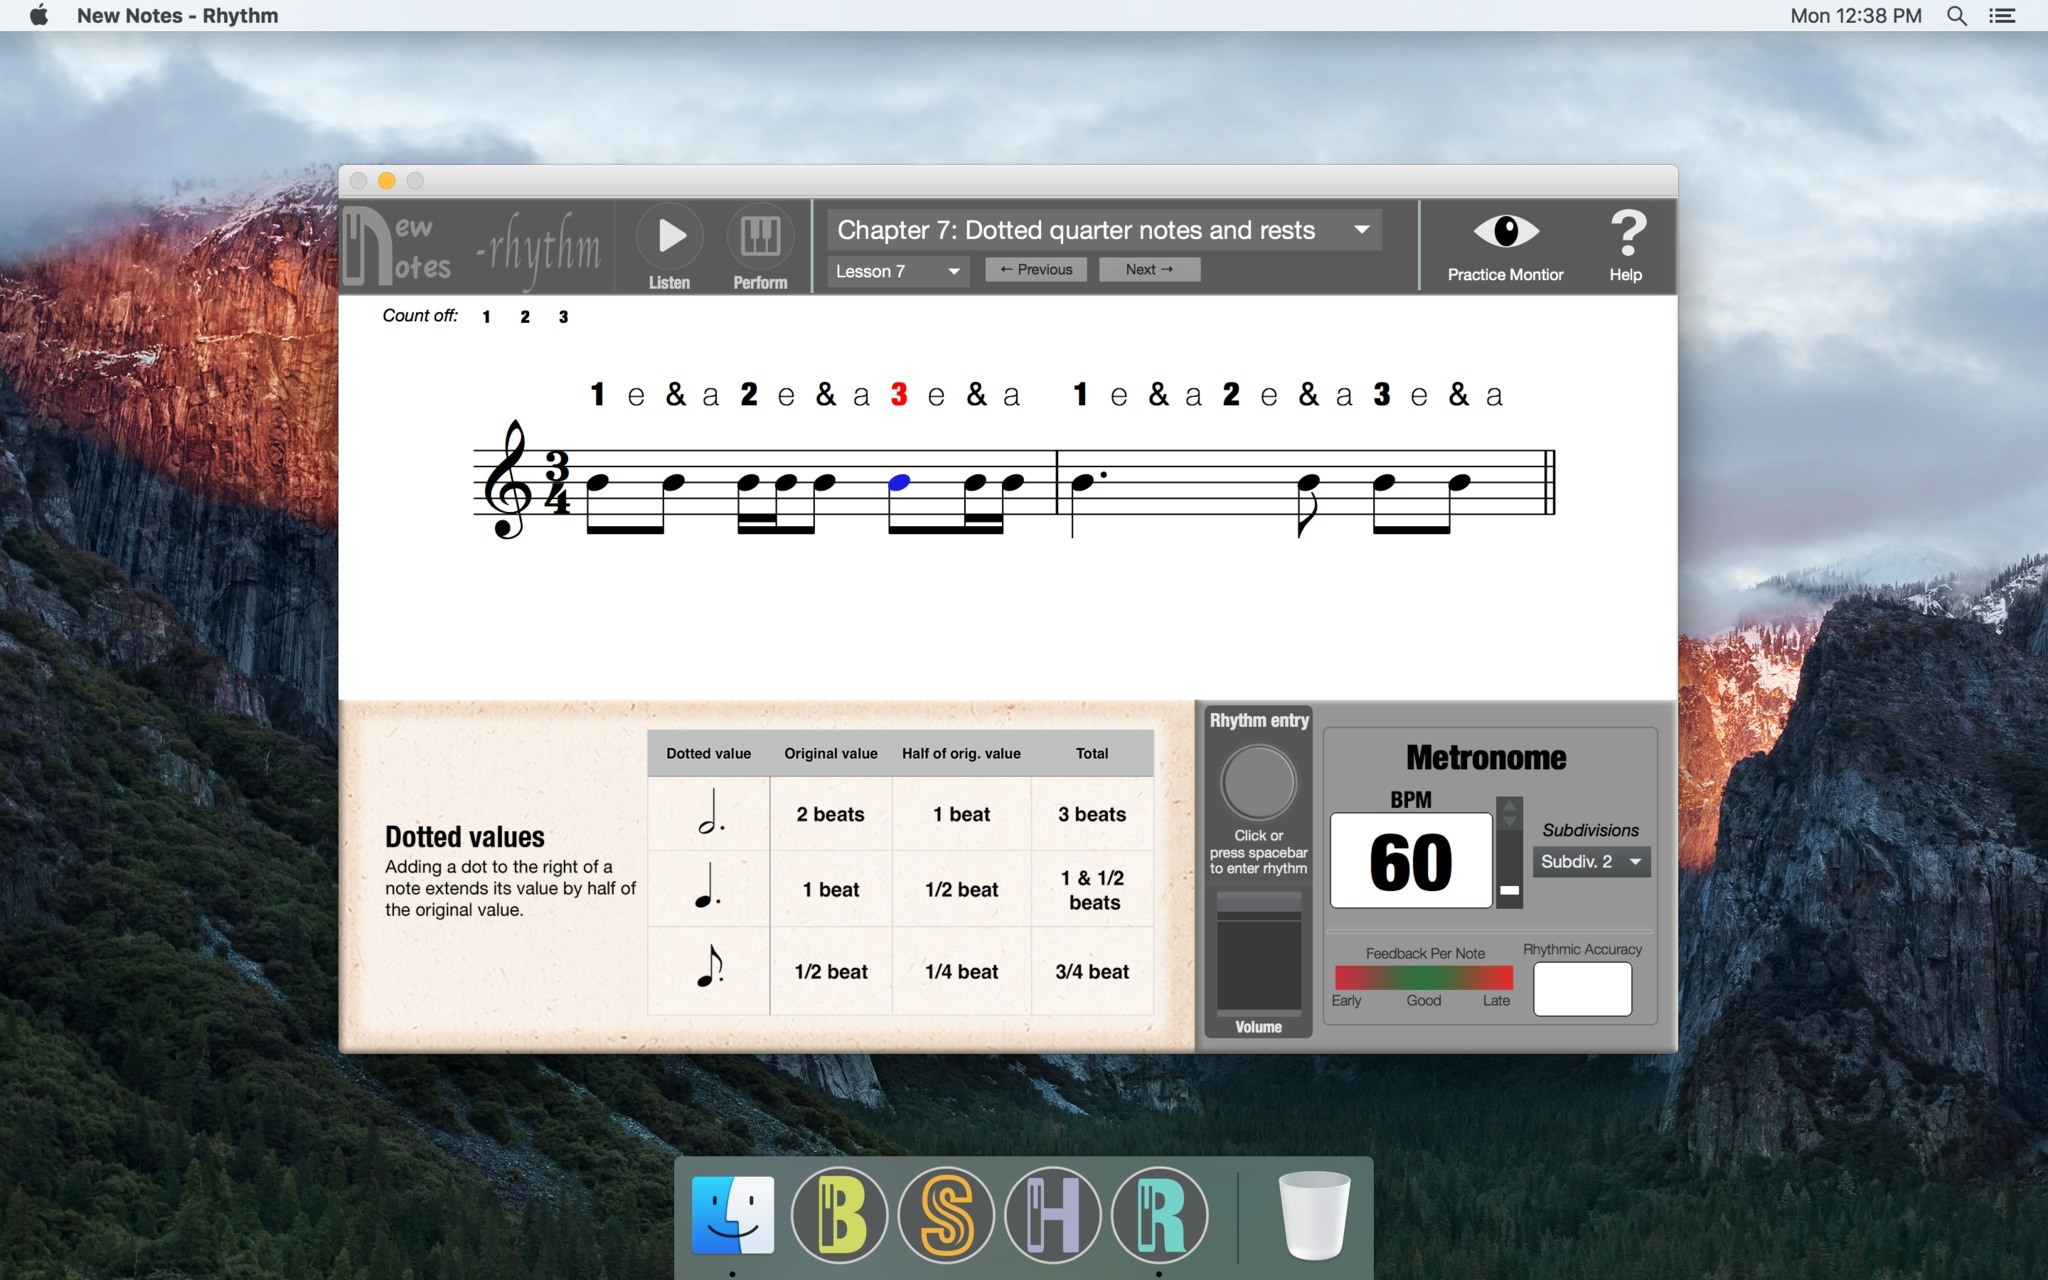 Screenshot 3 for New Notes - Rhythm